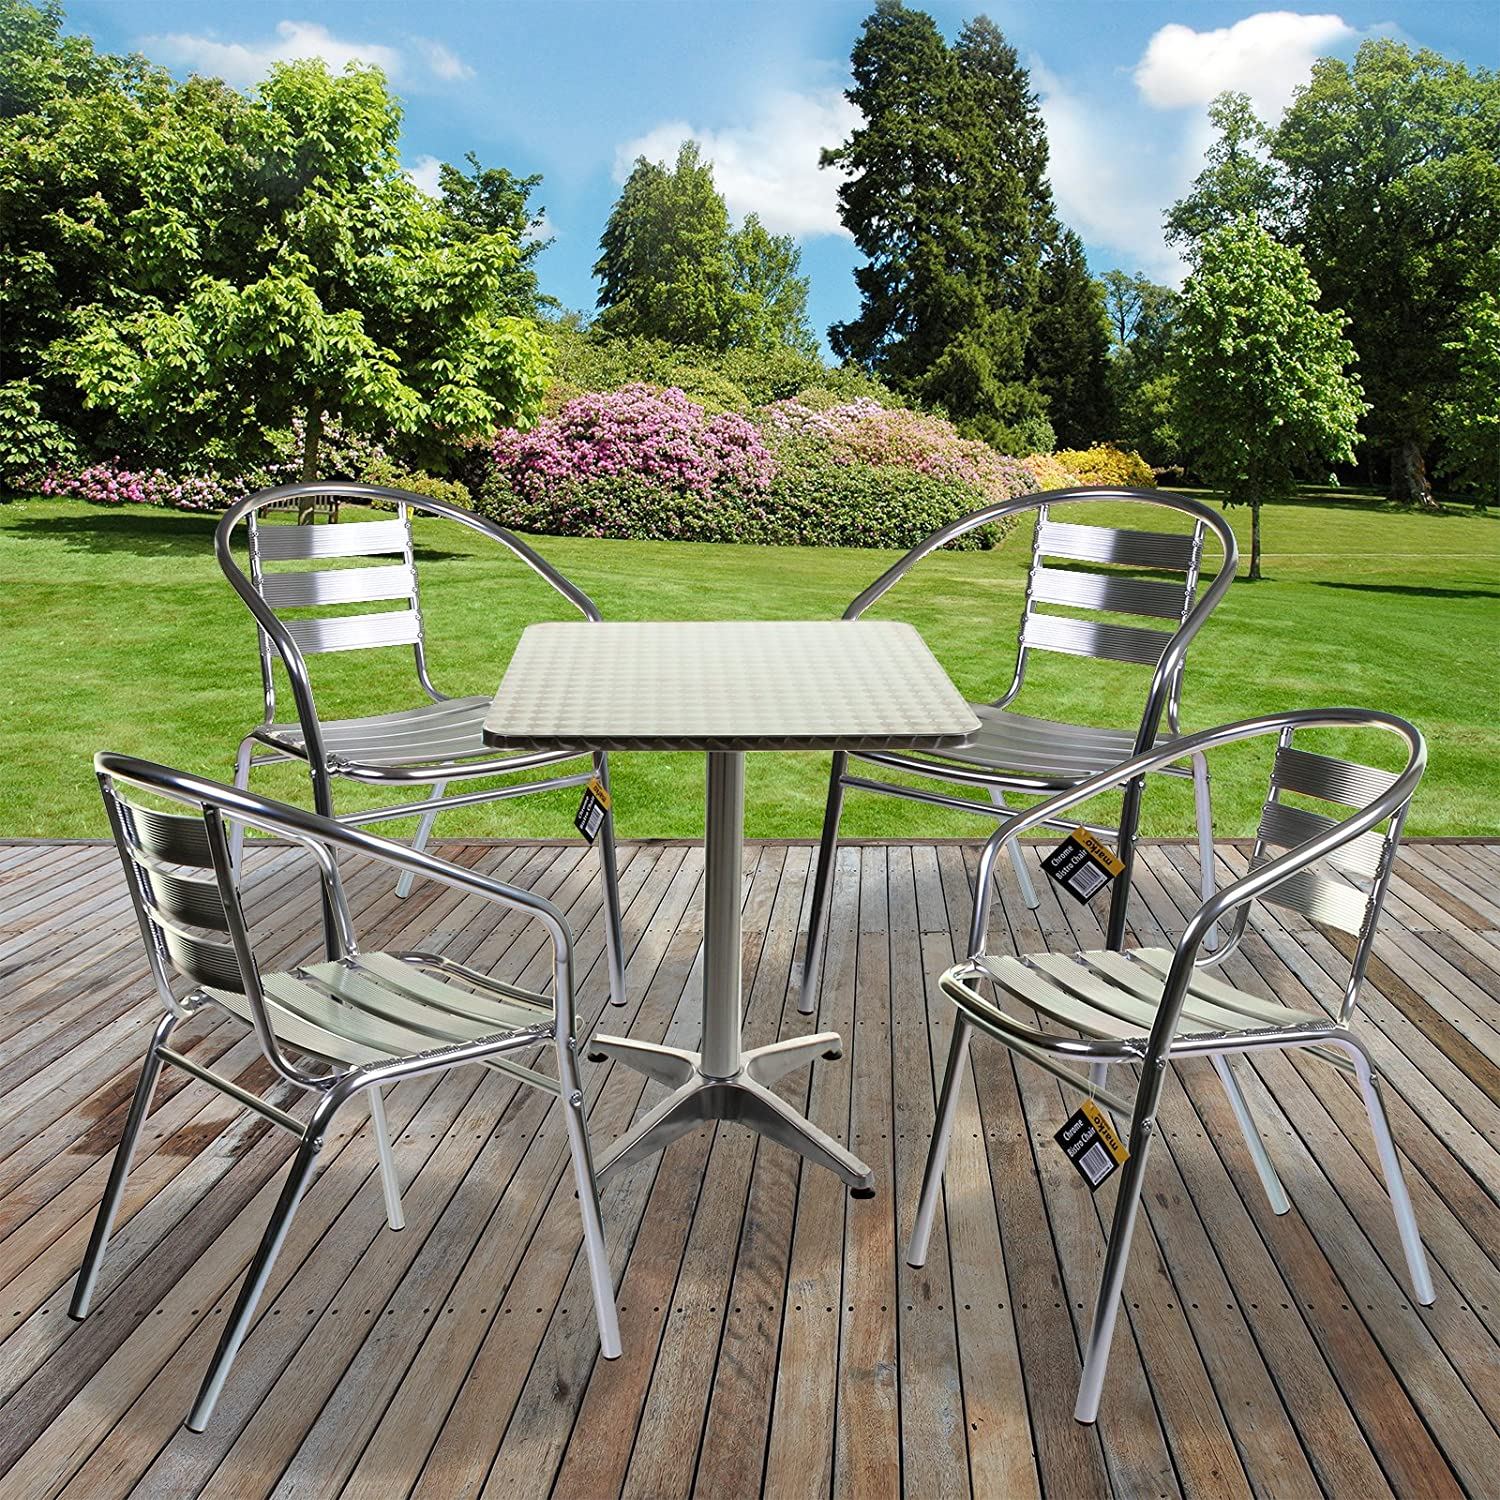 1x Square Bistro Table & 4x Chairs - Aluminium Lightweight Chrome Bistro Sets Square Table Chair Patio Garden Outdoor Marko